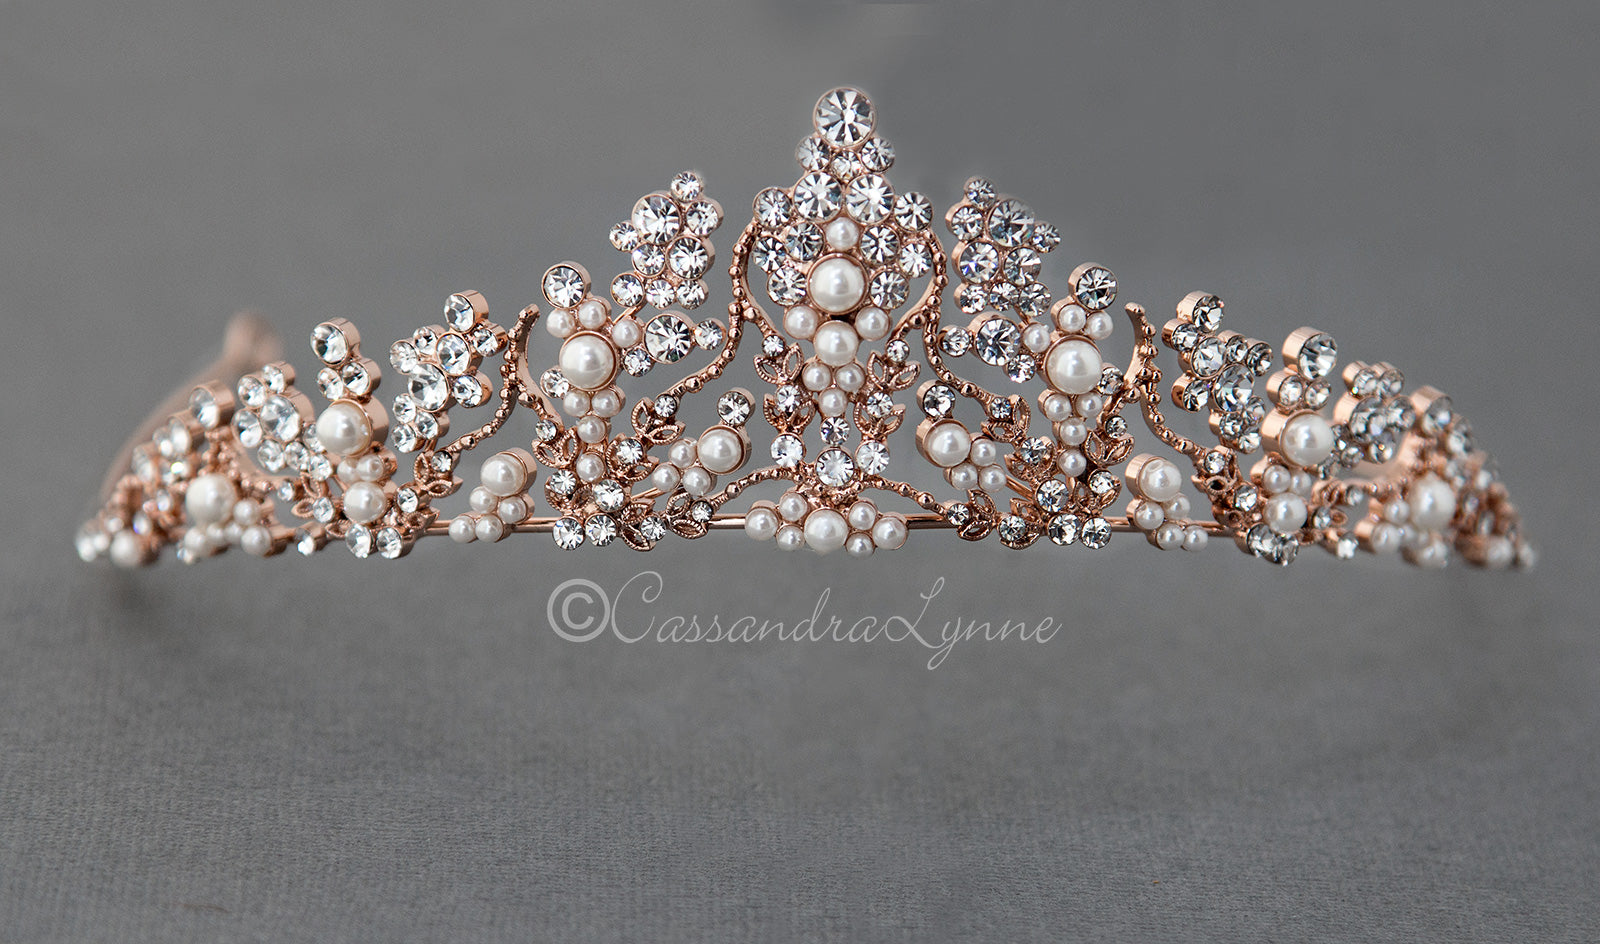 Wedding Tiara of Crystal Clusters in Rose Gold